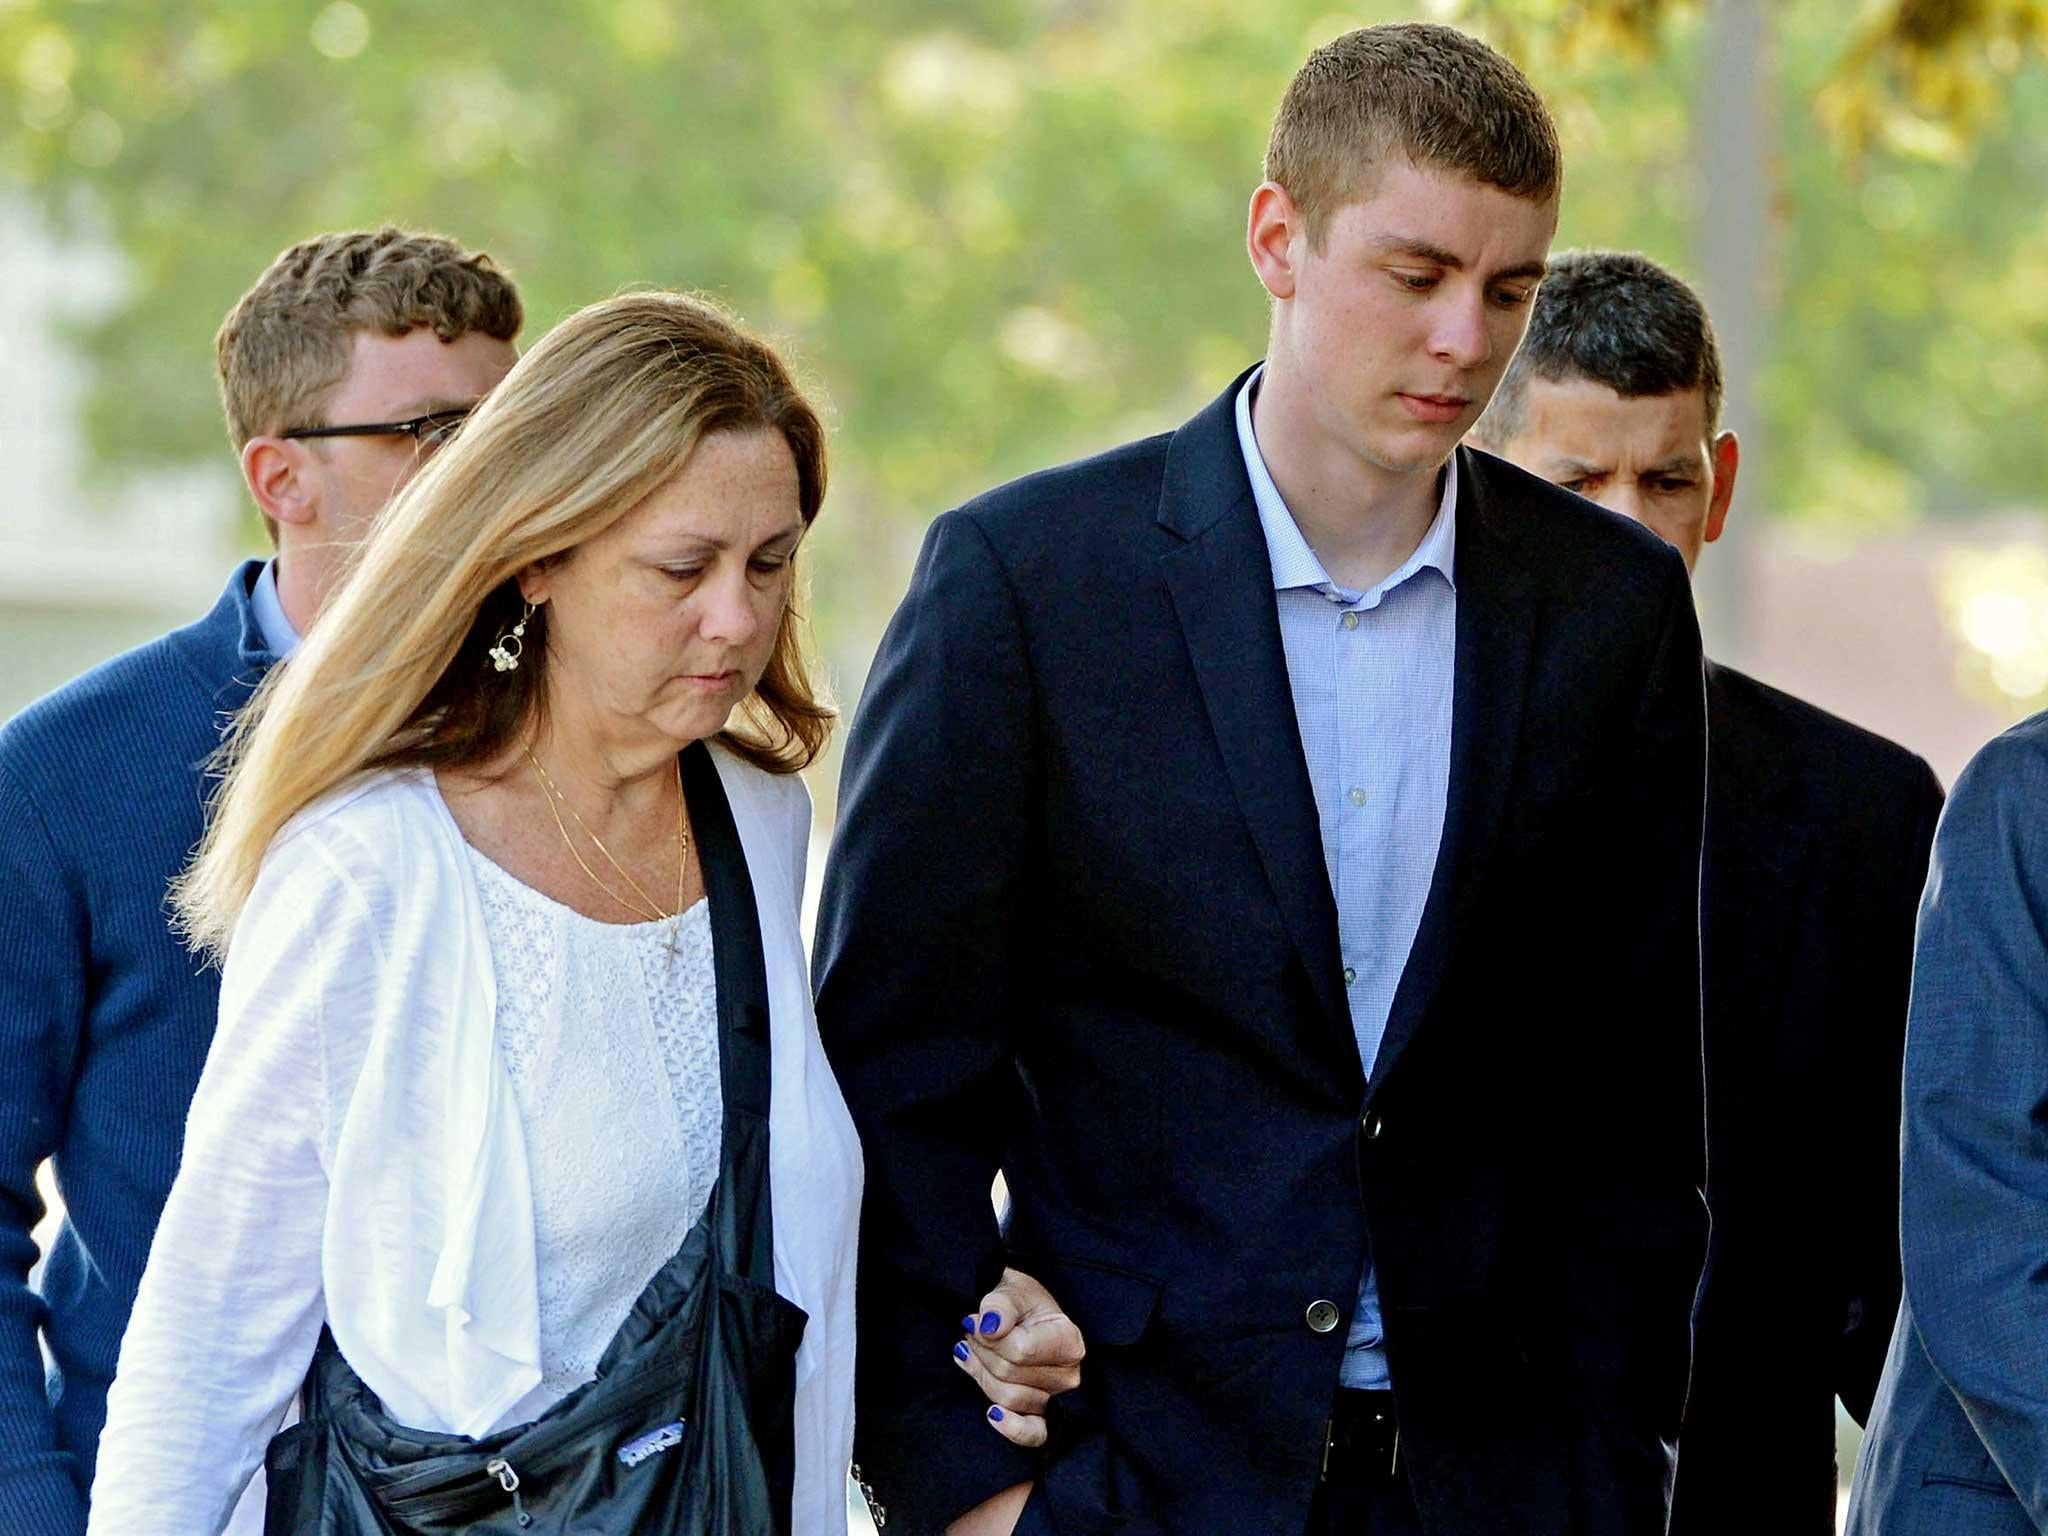 stanford rape case: to the swimmer who attacked a girl, i'm sorry